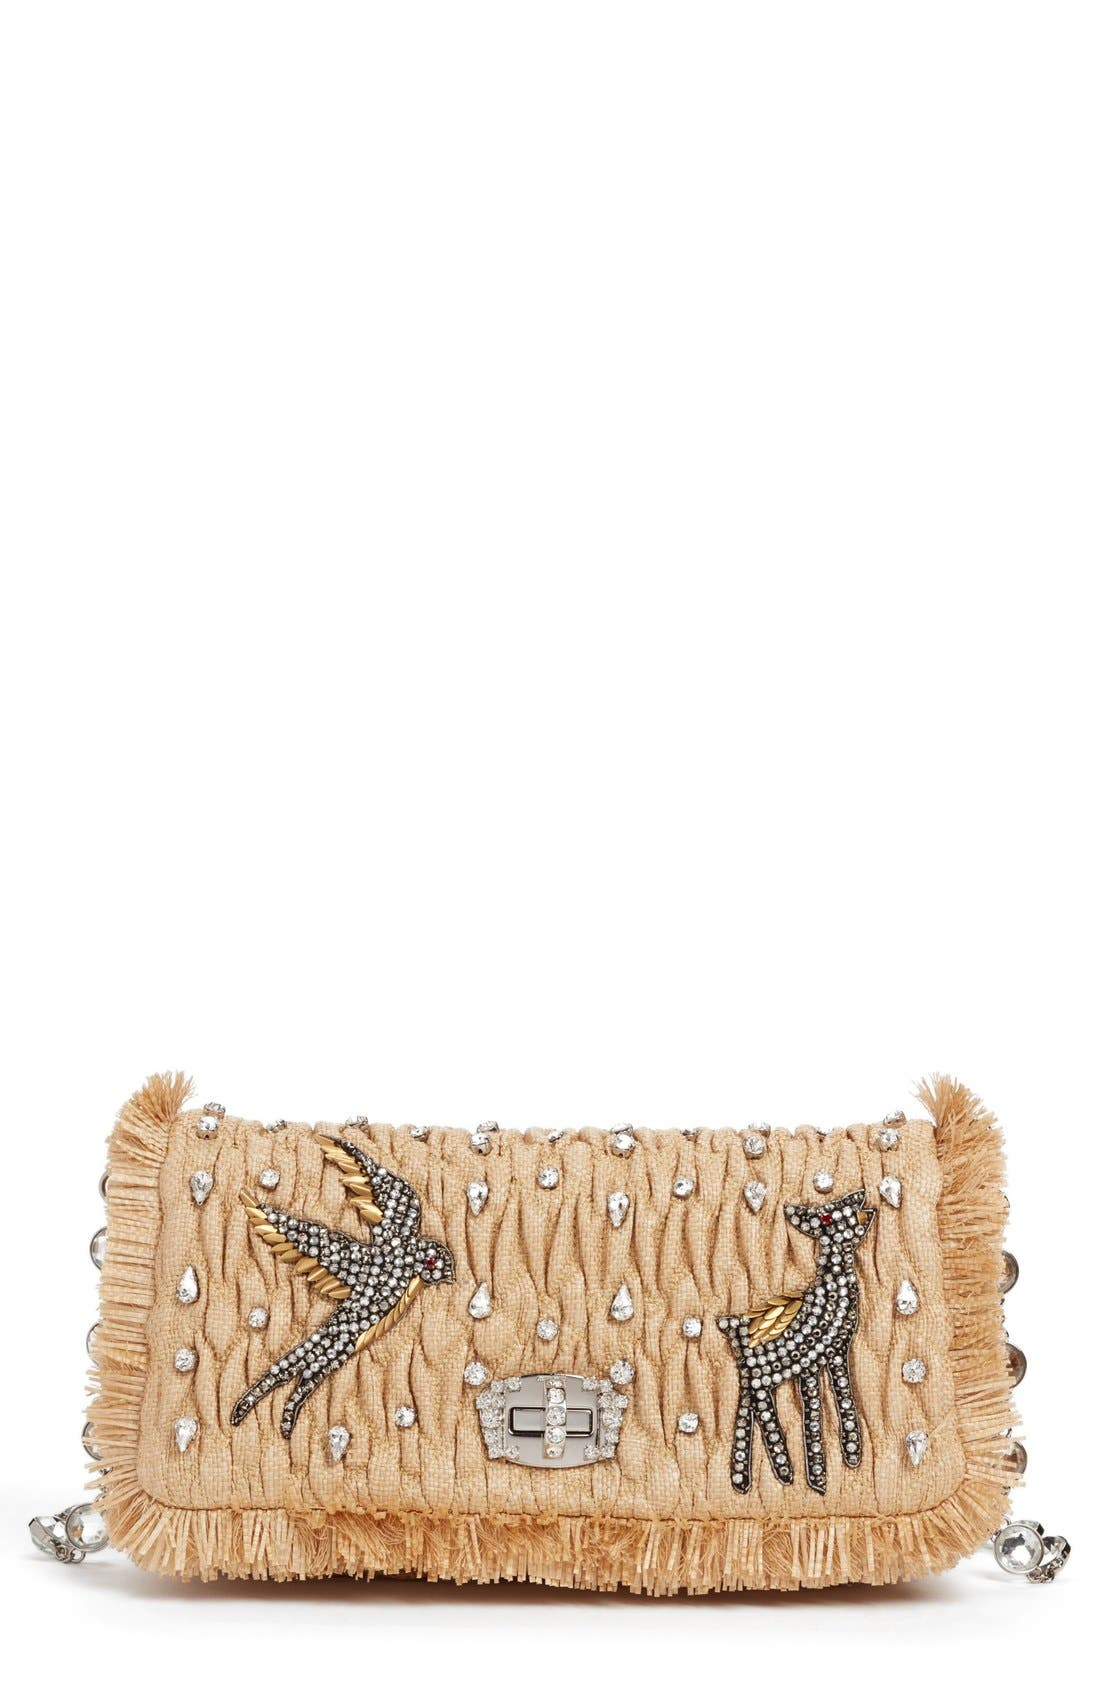 Main Image - Miu Miu Paglia Straw Shoulder Bag